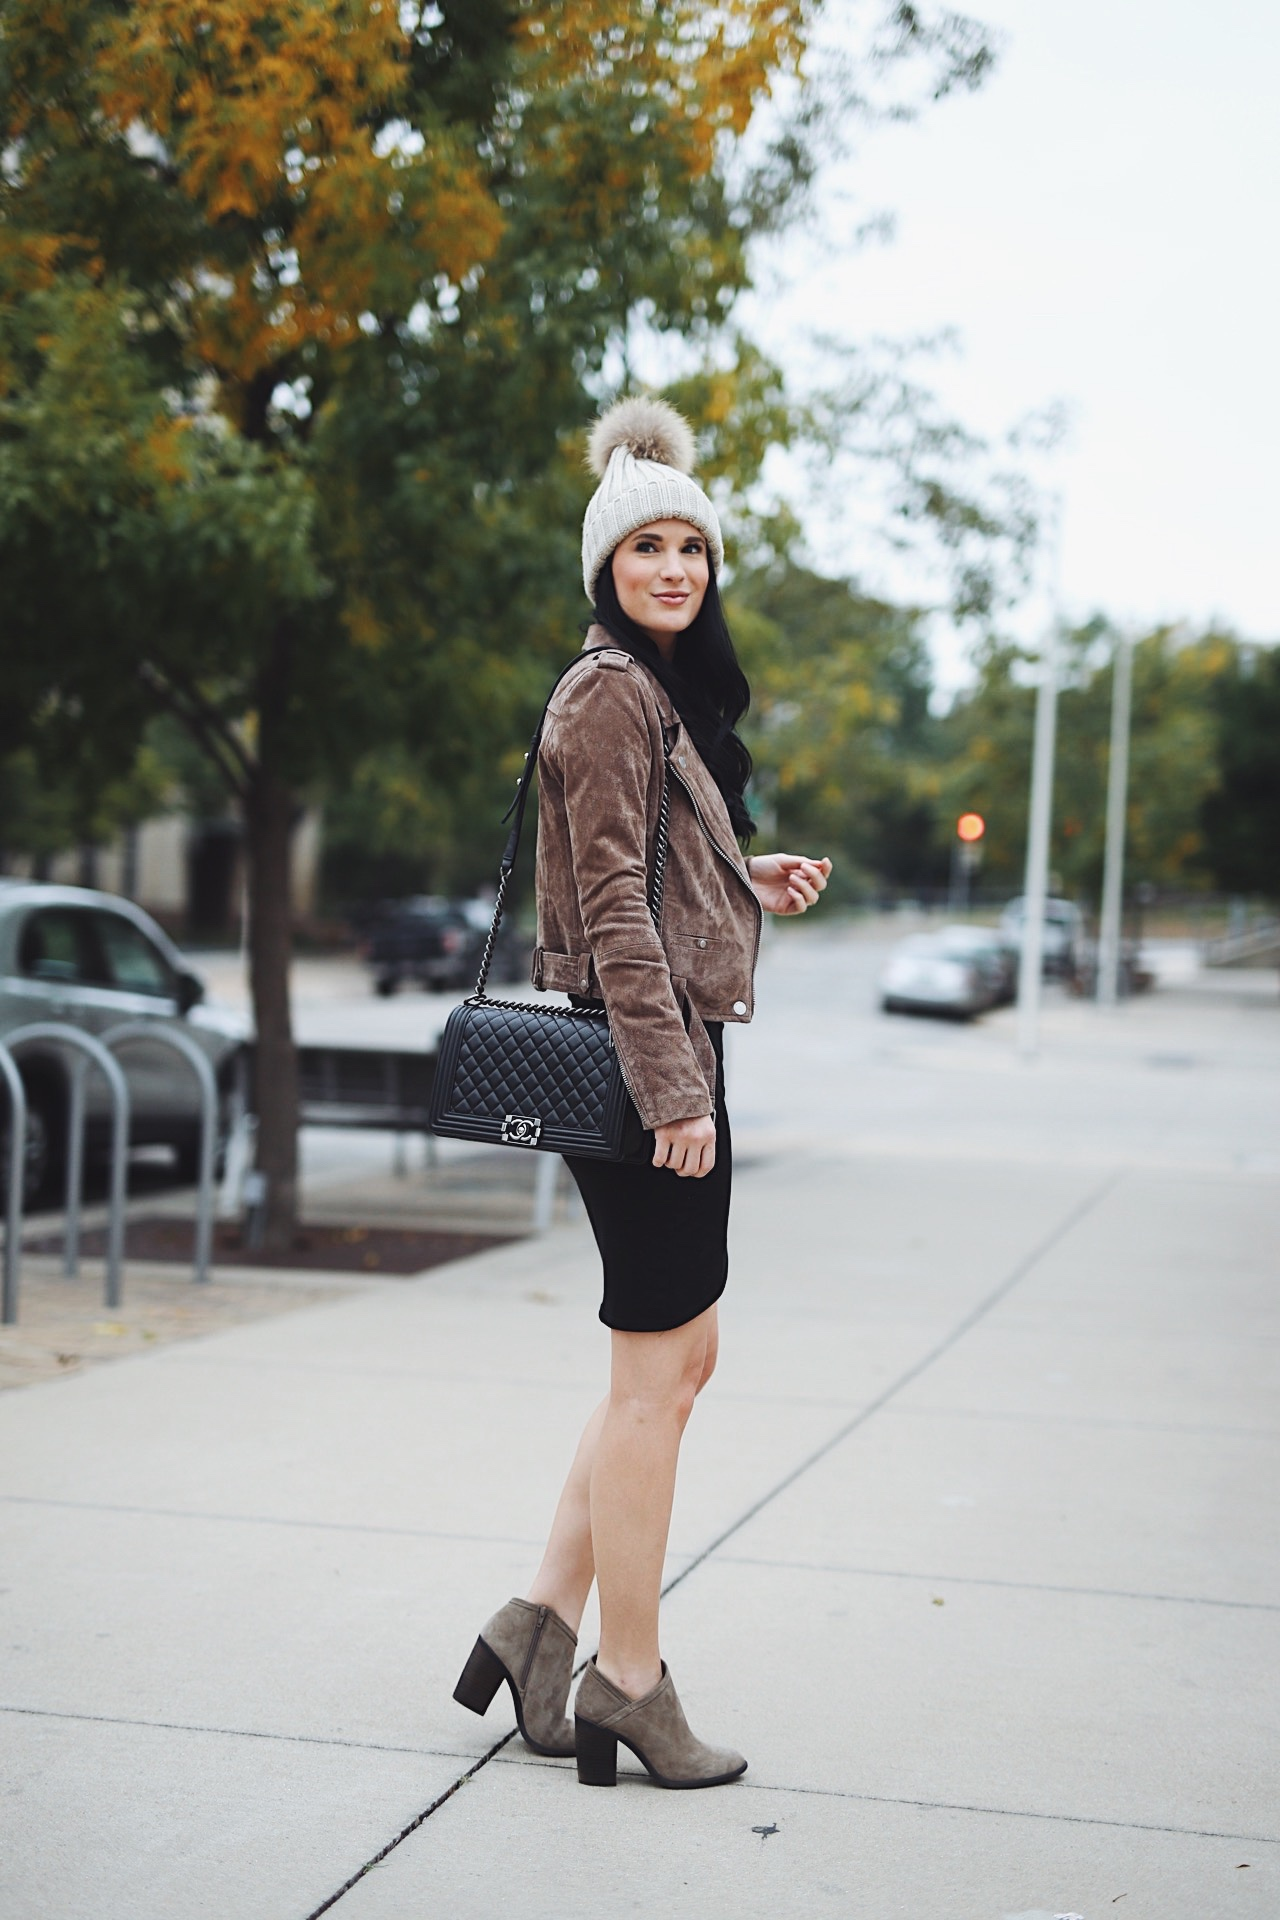 DTKAustin shares her favorite Fall/Winter nude booties that are all under $100 from Nordstrom. | affordable nude booties | nude bootie style | styling a nude bootie | fall shoes | must-have fall shoes | fall style tips | what to wear for fall | cool weather fashion | fashion for fall | style tips for fall | outfit ideas for fall || Dressed to Kill #nudebooties #bootieseason #fallshoes #fallstyle